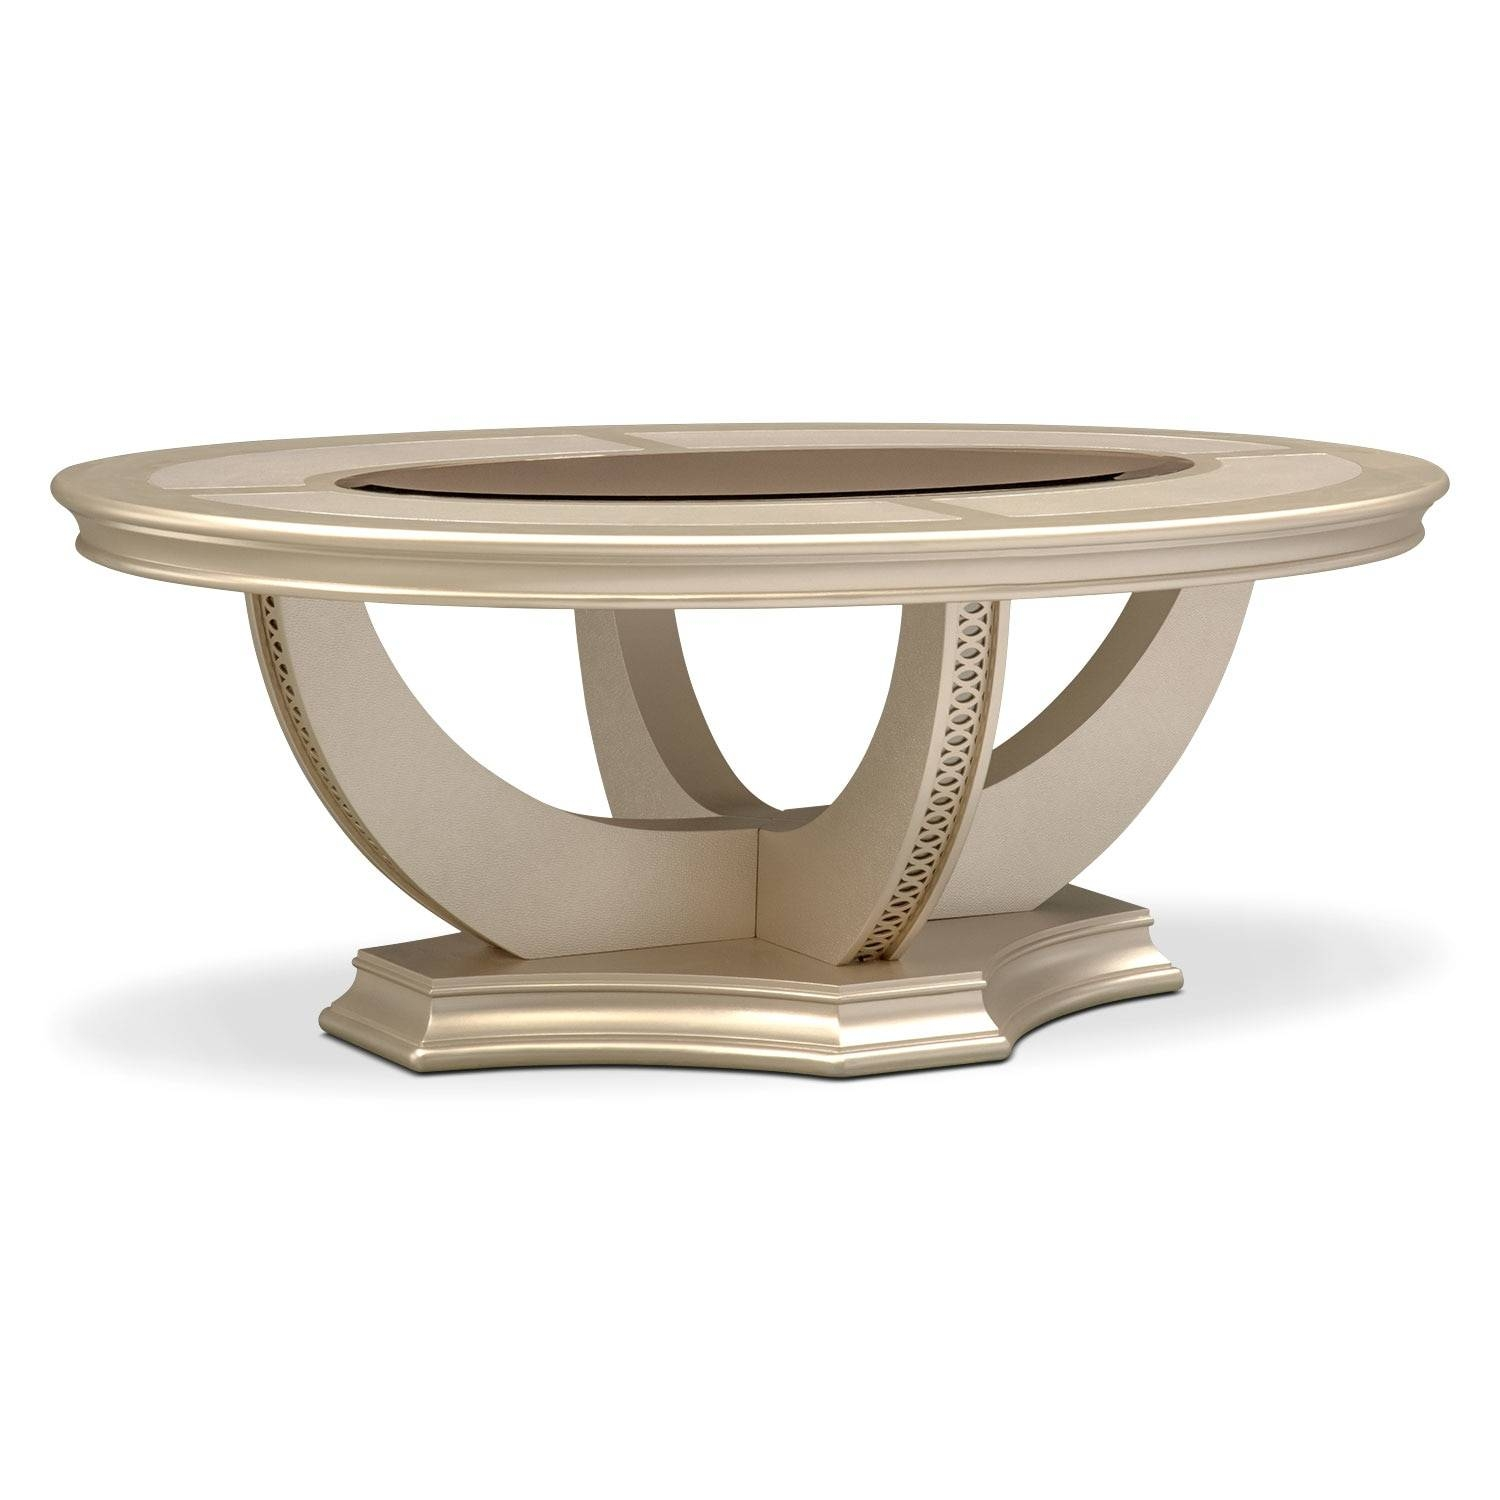 Coffee Tables | Living Room Tables | American Signature Furniture inside Odd Shaped Coffee Tables (Image 13 of 30)